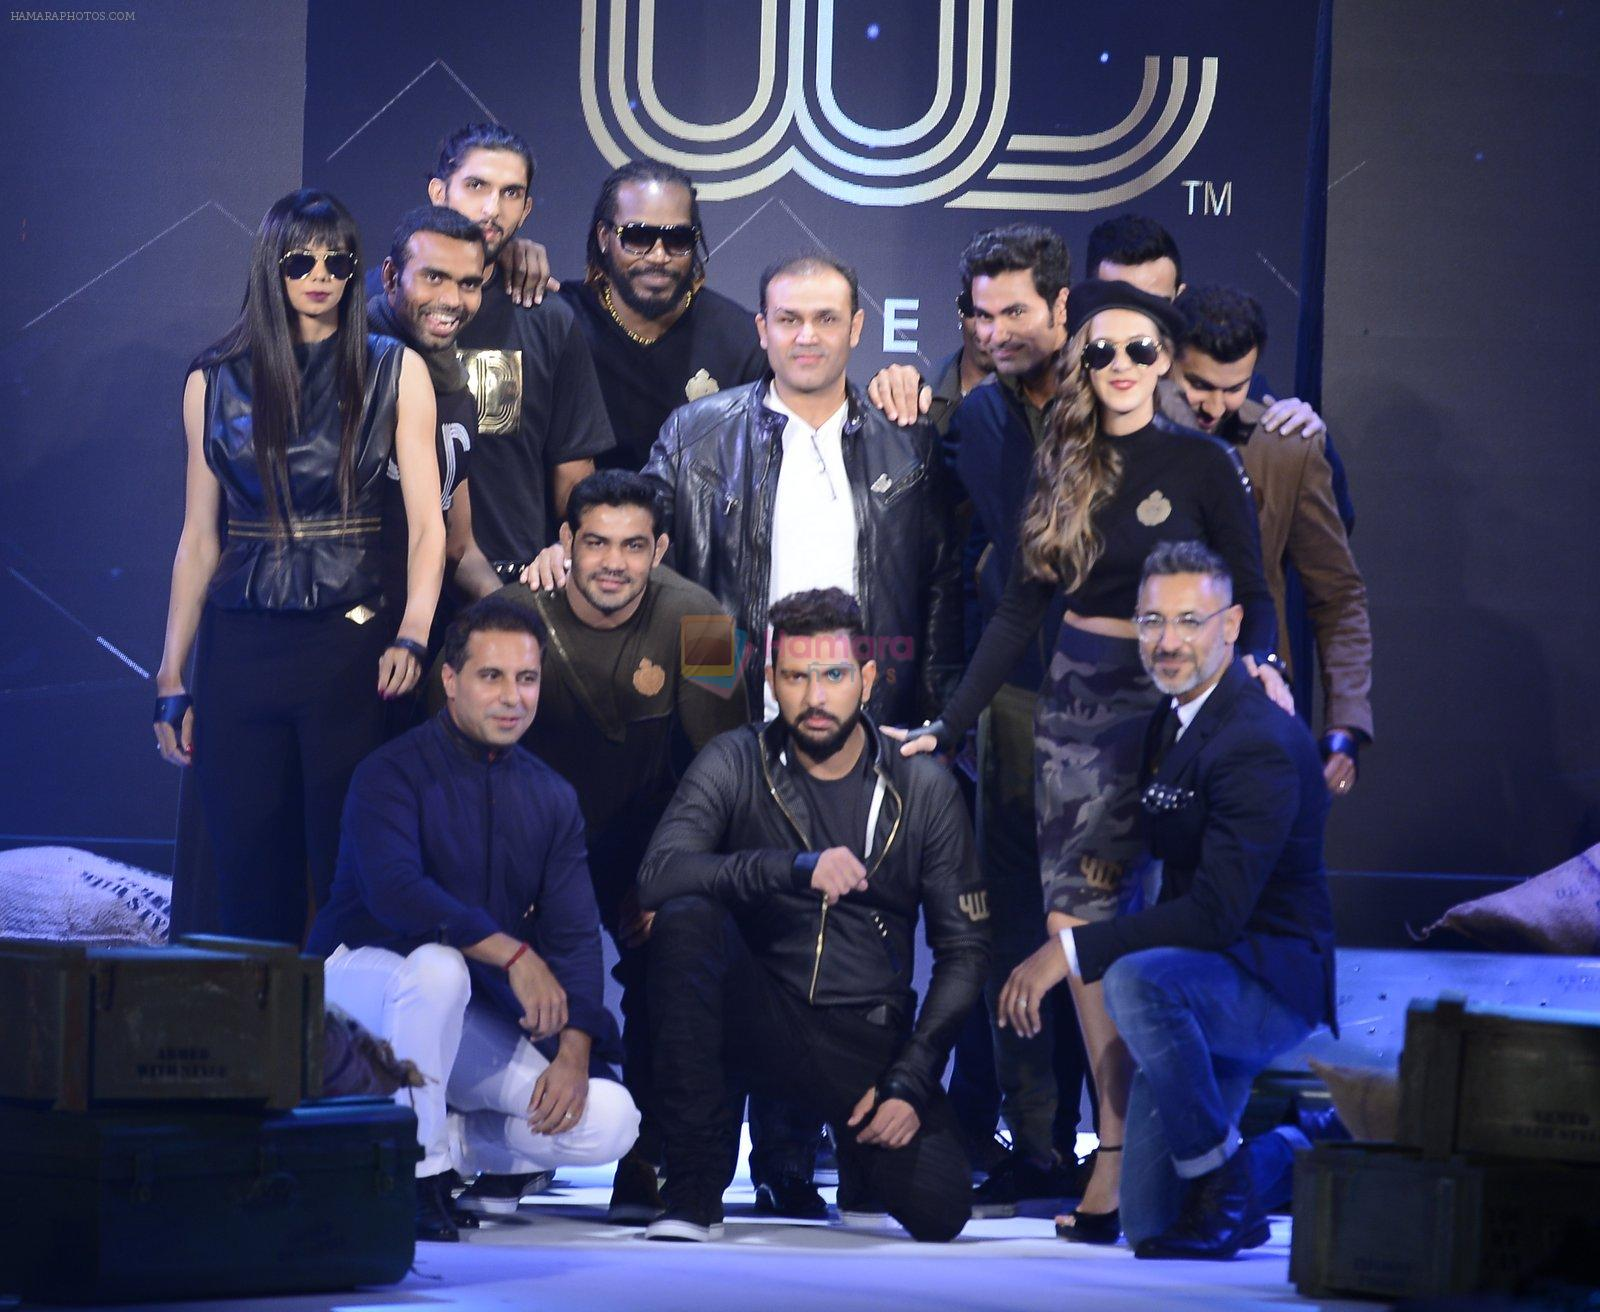 Yuvraj Singh, Virender Sehwag at You We Can Label launch with Shantanu Nikhil collection on 3rd Sept 2016